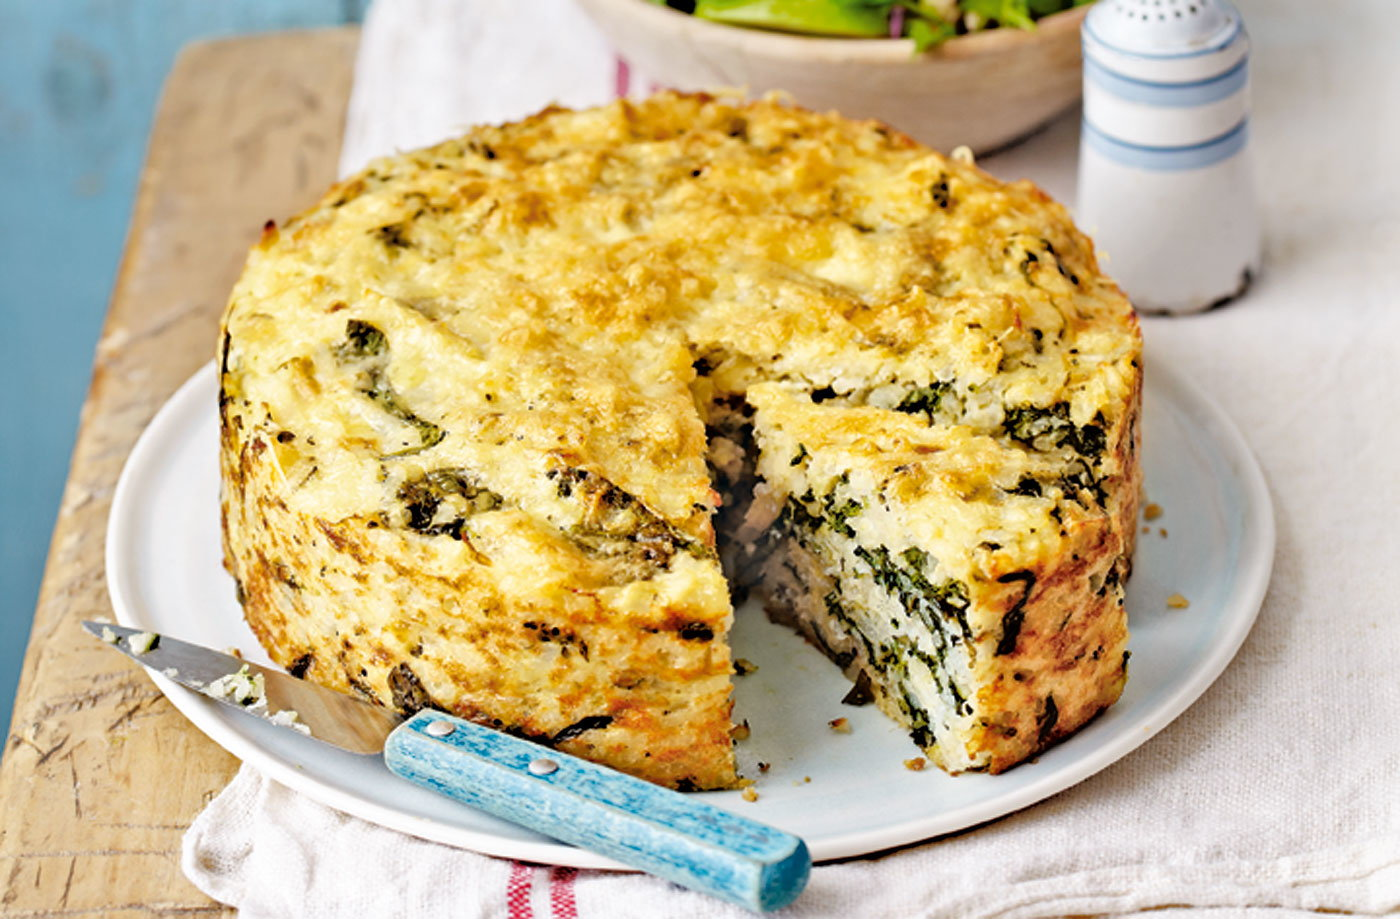 Spinach and Gruyère risotto cake with red cabbage winter salad recipe